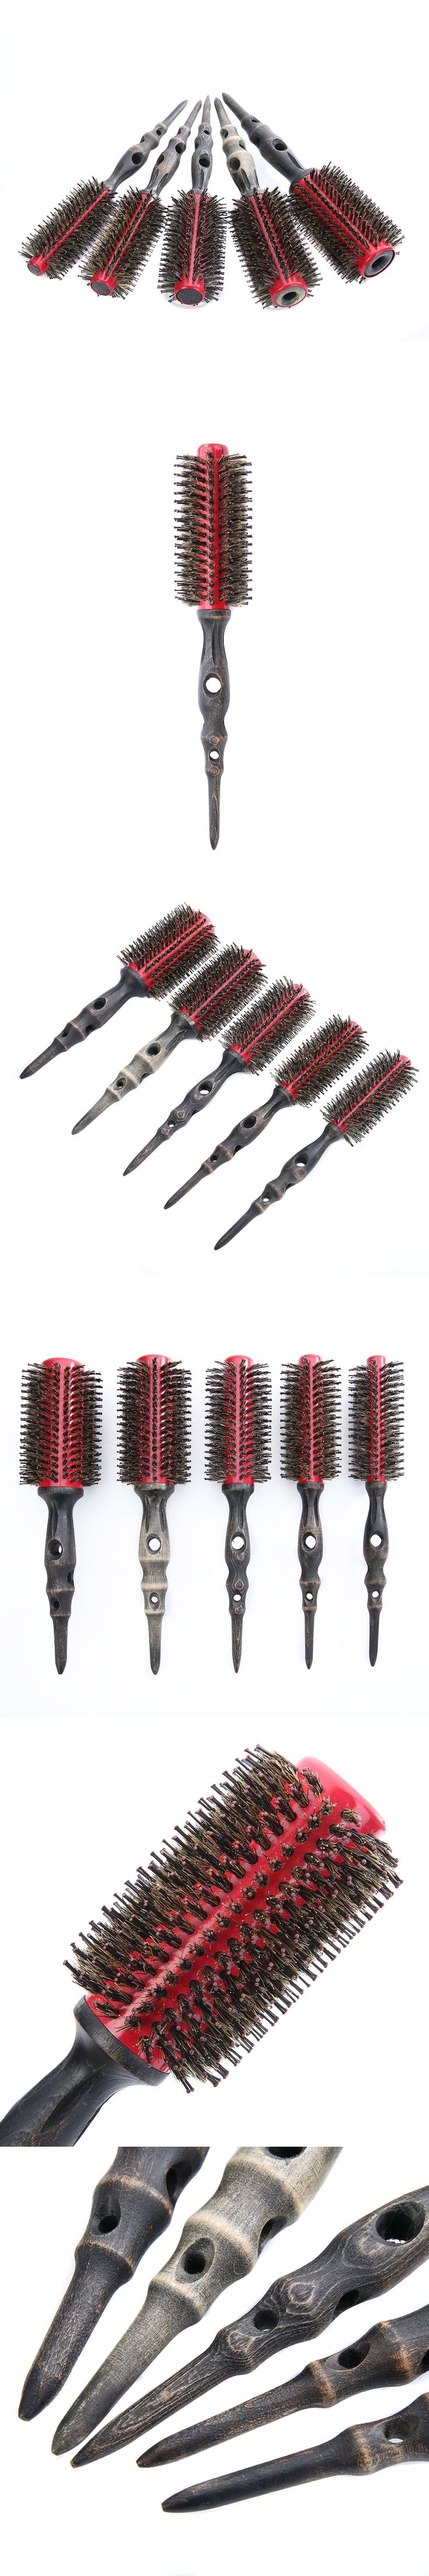 Mayitr New 5pcs/Set Round Bristle Brush Curly Hair Comb Brush Wood Handle Hair Brushes DIY Hairdressing Tools